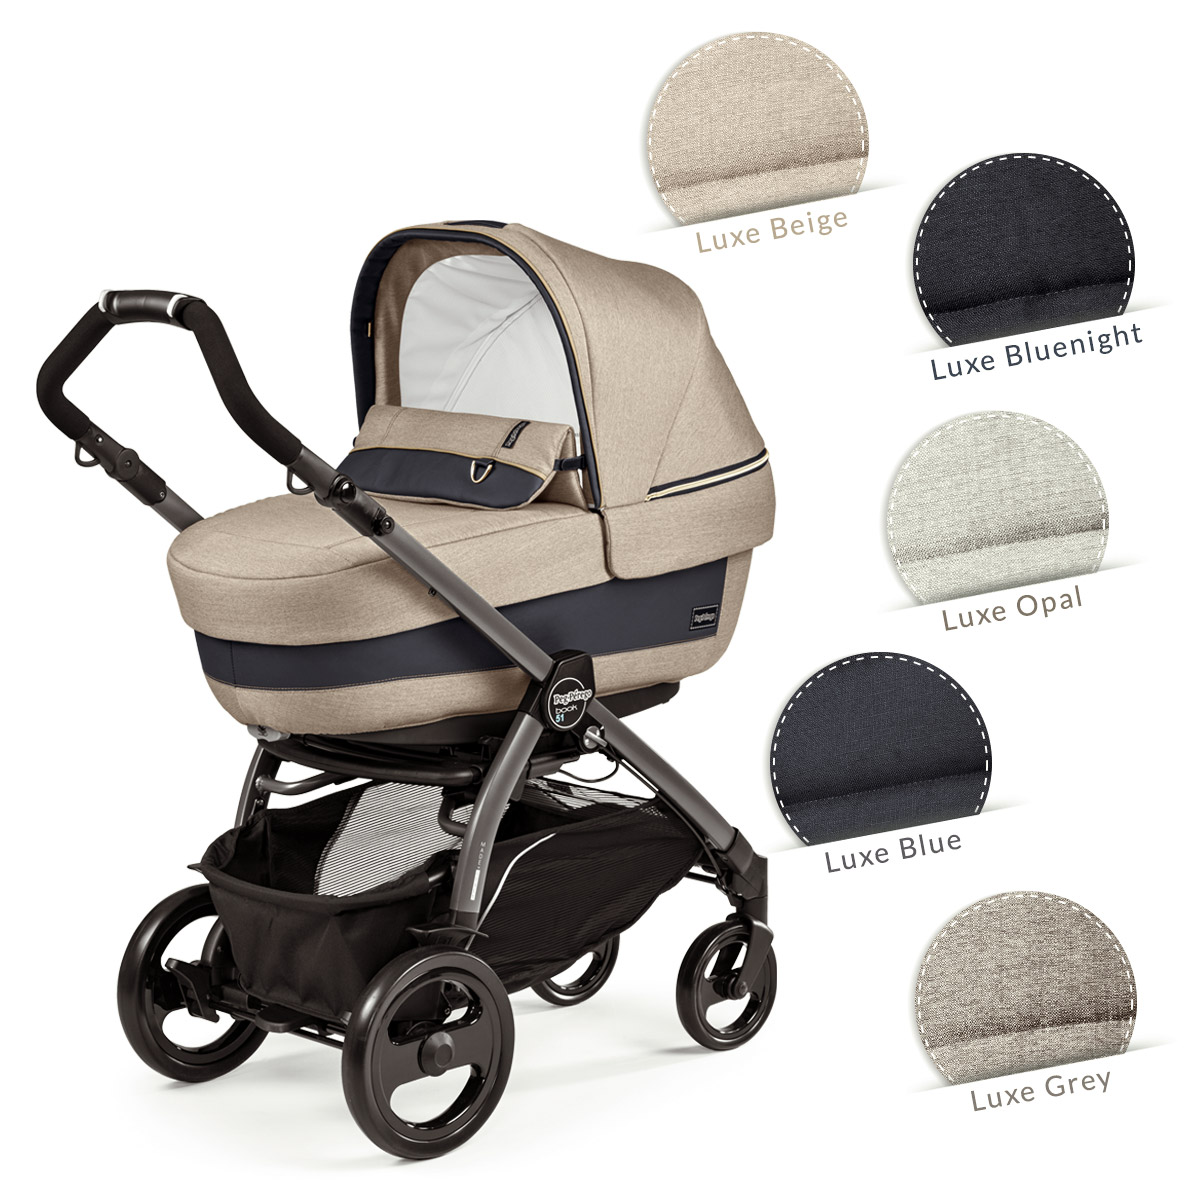 Peg Perego Book Plus 51 Occasion Expecting A Child In 2018 The New Look Of Modular Systems